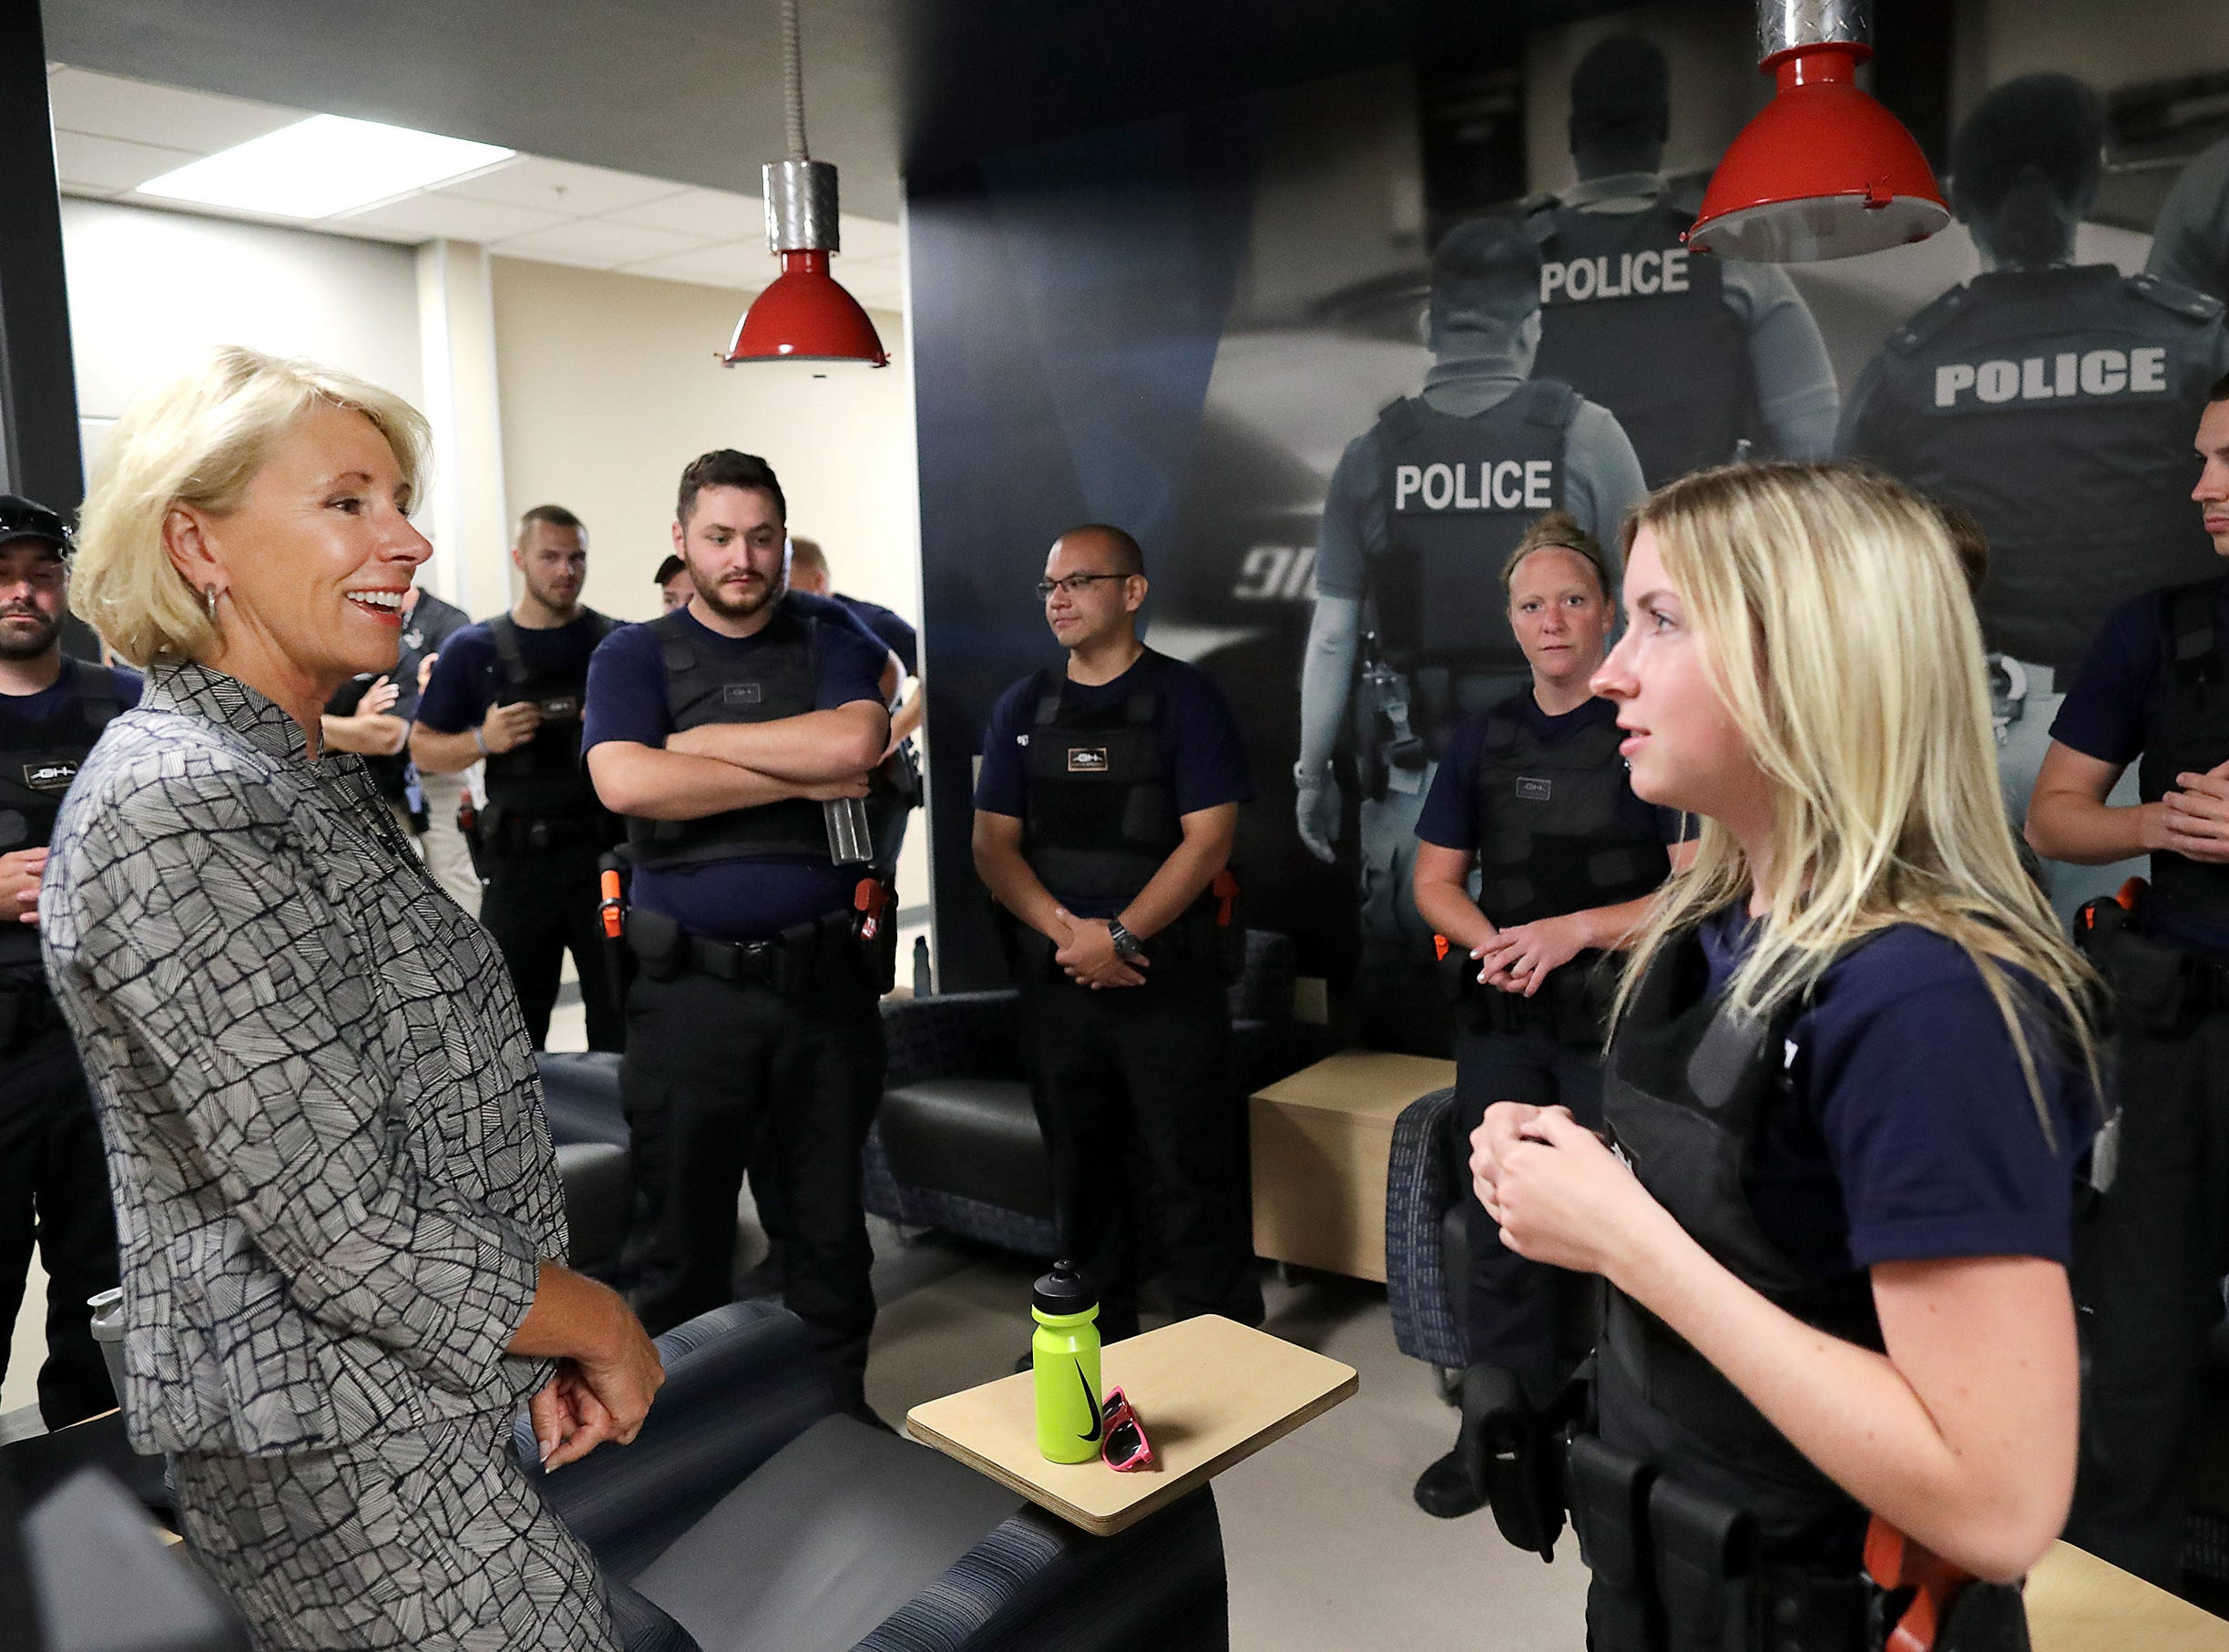 U.S. Secretary of Education Betsy DeVos talks with students while taking a tour to see firsthand how Fox Valley Technical College's Public Safety Training Center is merging classroom lessons with reality-based hands-on training on Tuesday, July 24, 2018 in Greenville, Wis. Wm. Glasheen/USA TODAY NETWORK-Wisconsin